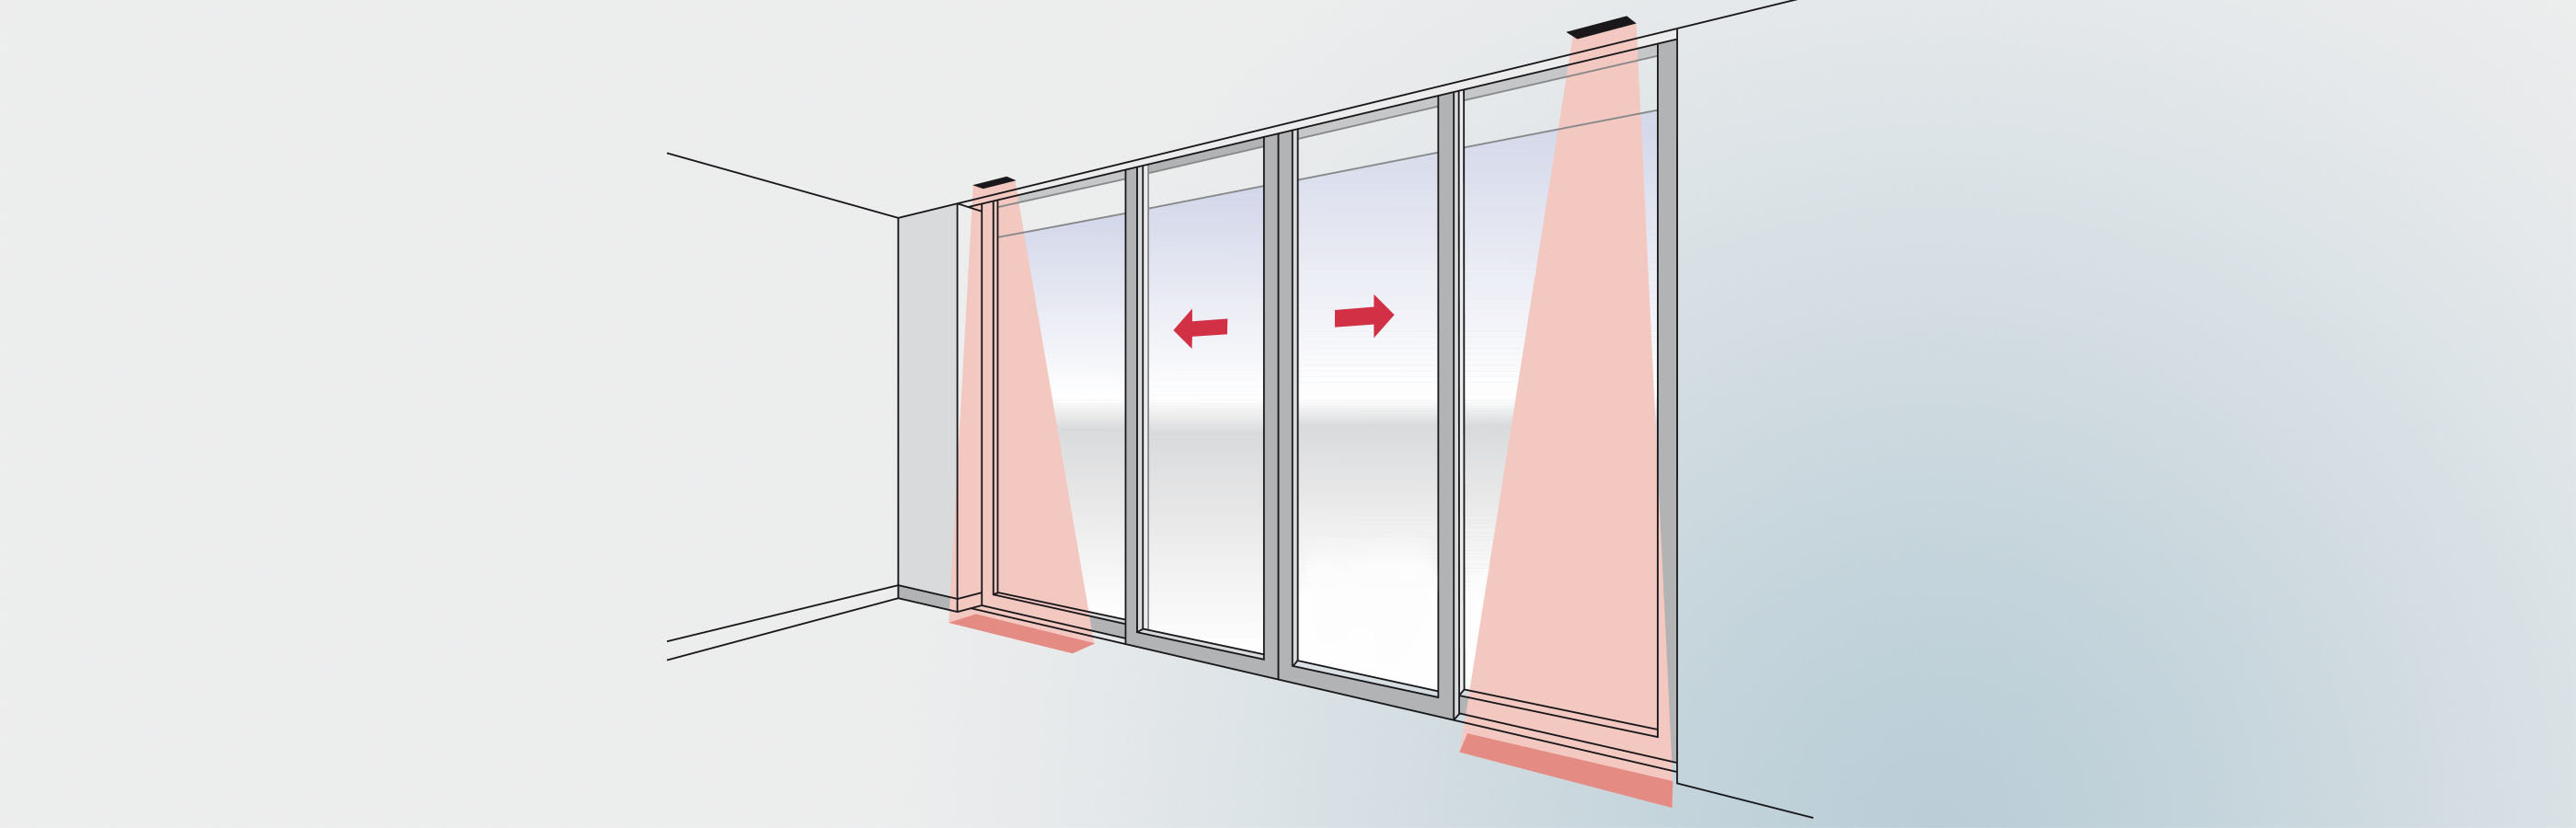 PrimeScan active infrared presence detector on the secondary closing edge of a sliding door